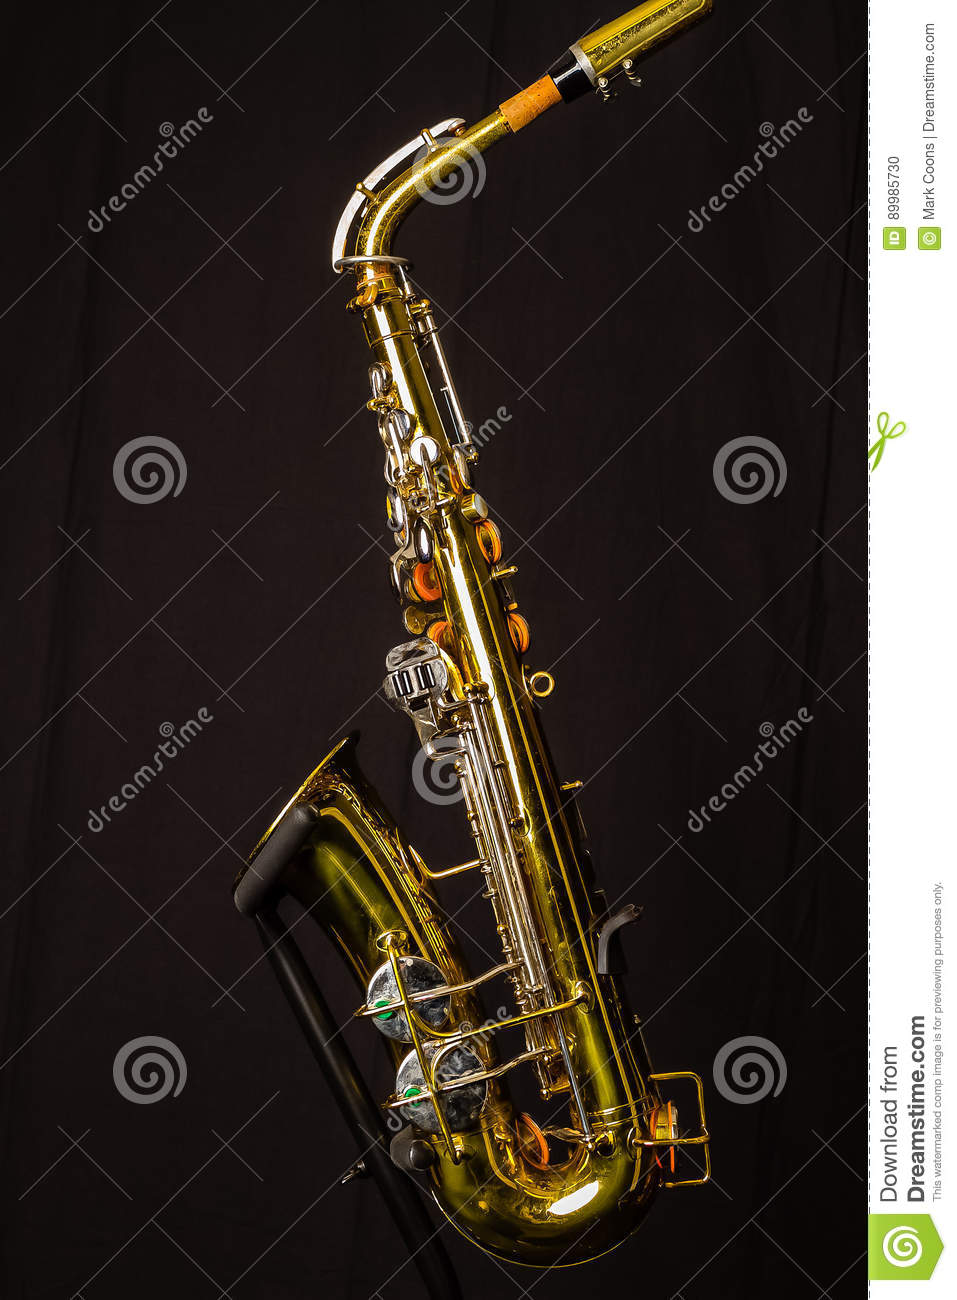 89 download sax